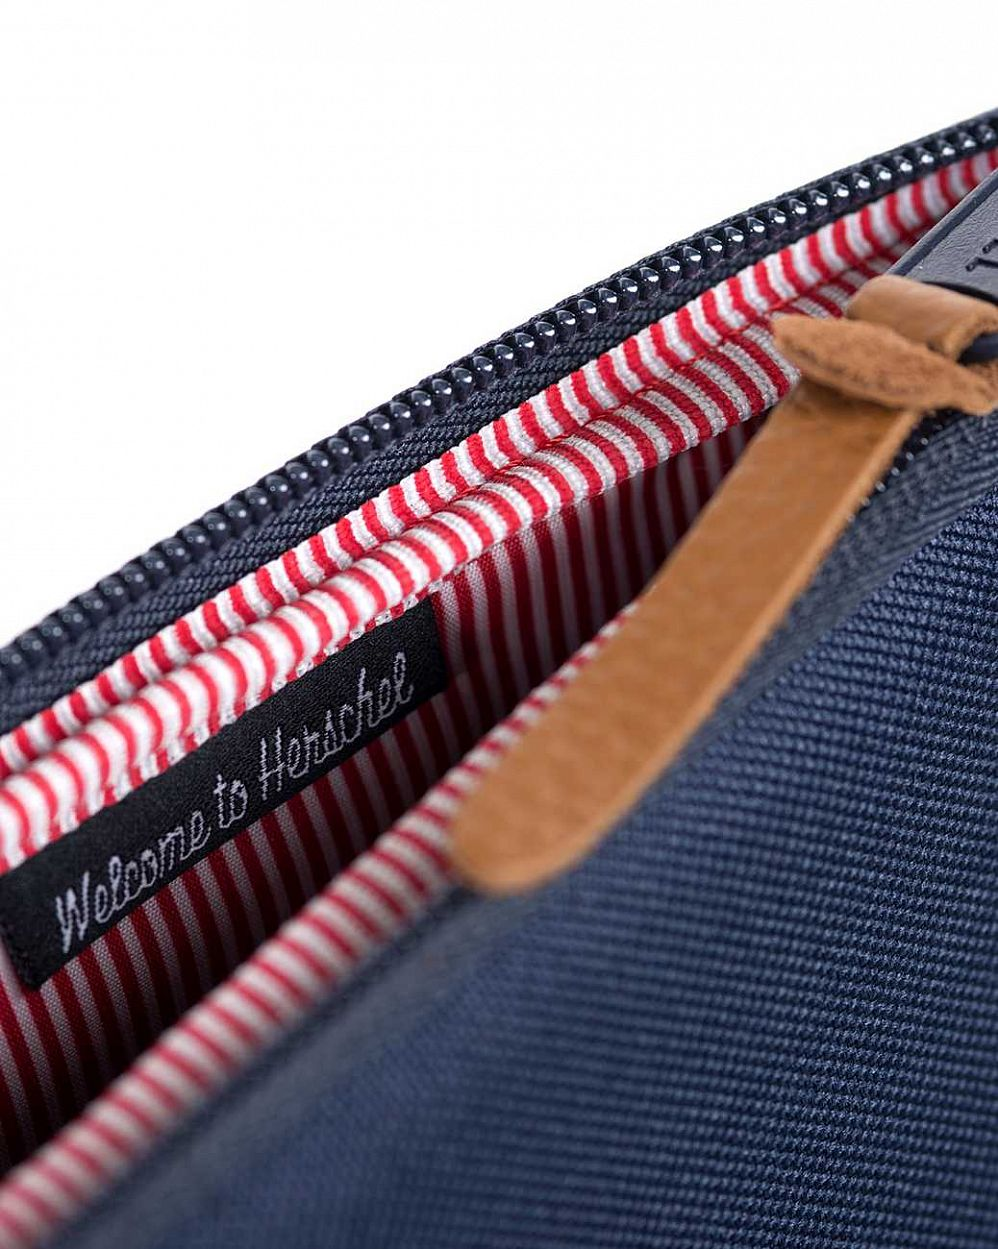 Чехол Herschel Anchor Sleeve для iPad Khaki Polka Dot Navy интернет-магазин в Москве